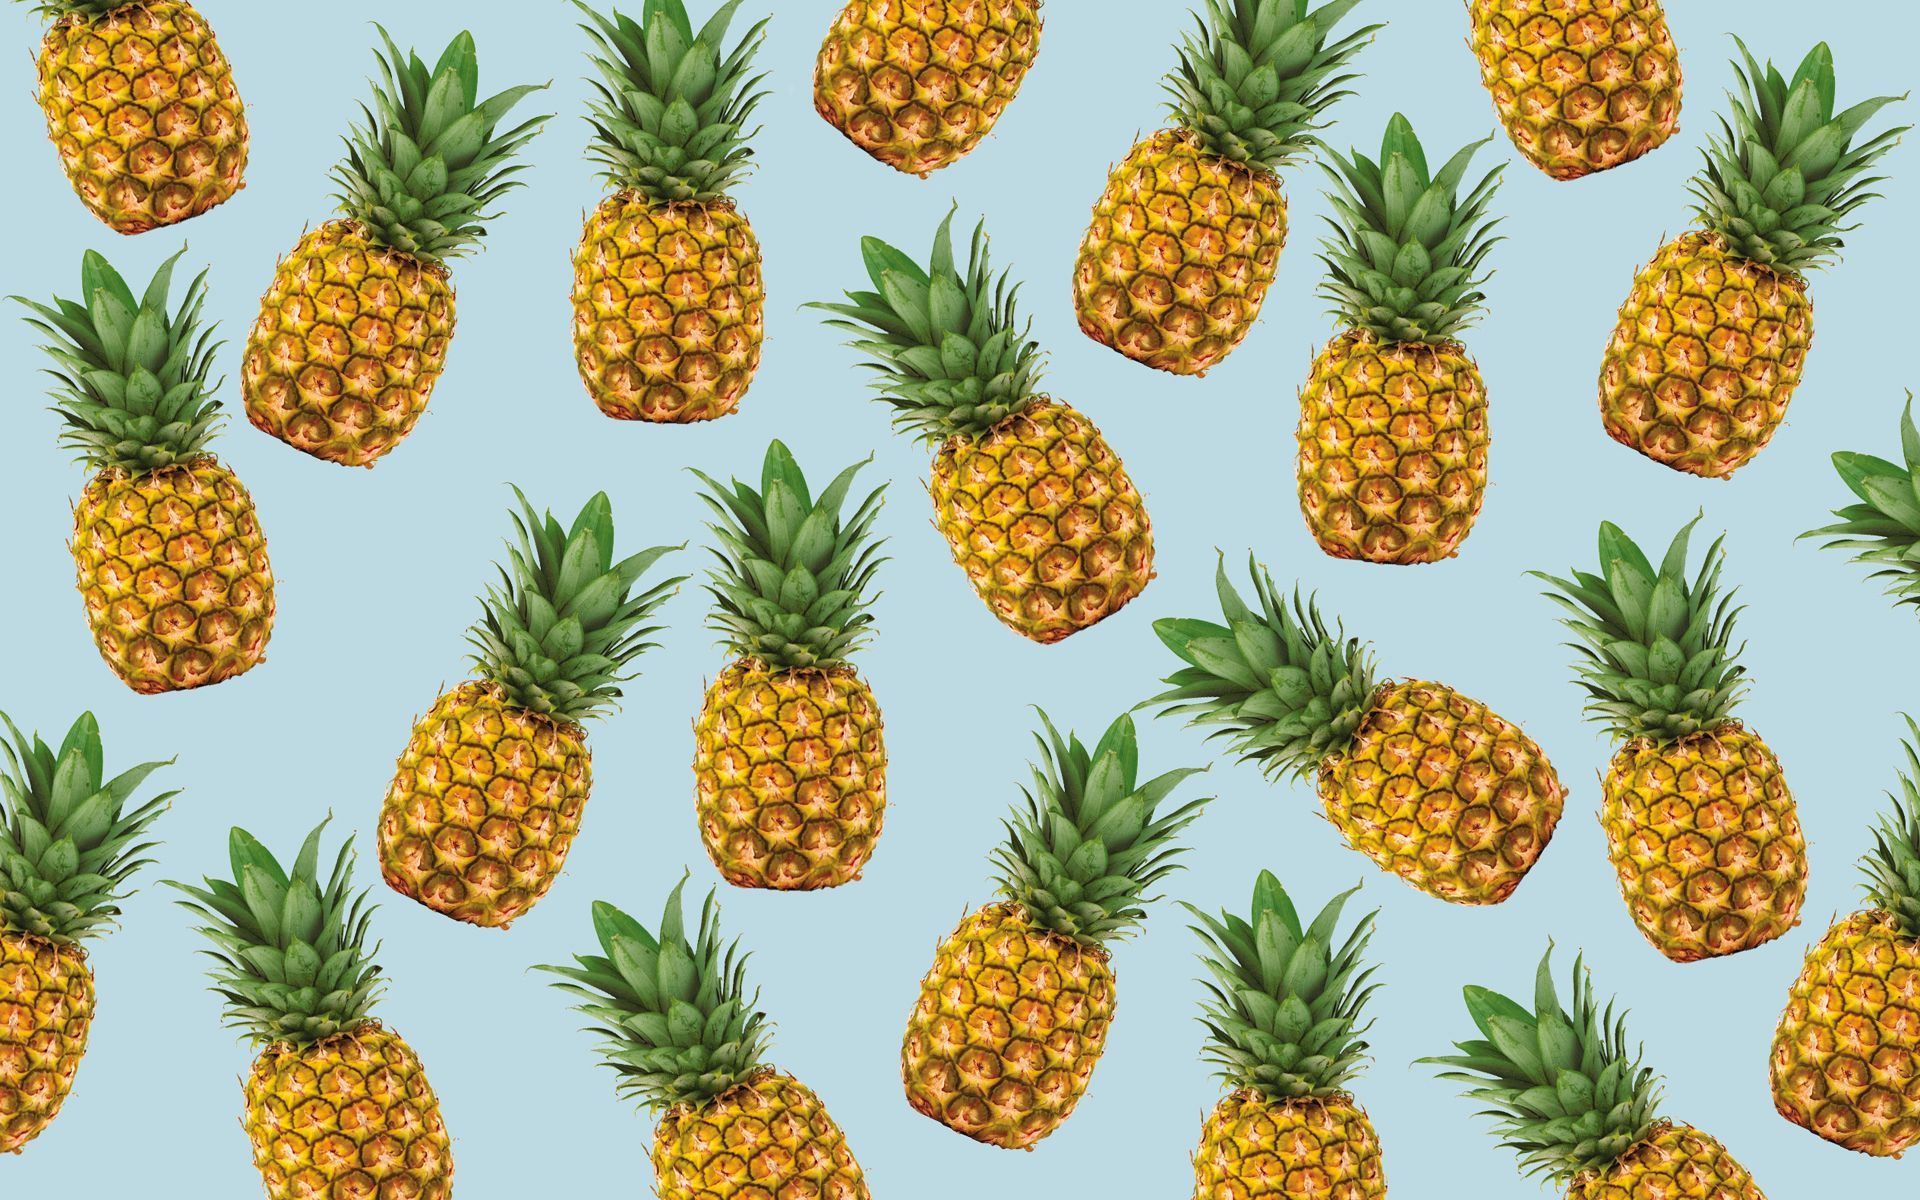 40 Colorful Pineapple Computer Wallpapers Download At Wallpaper Computer Wallpaper Computer Wallpaper Desktop Wallpapers Laptop Wallpaper Desktop Wallpapers